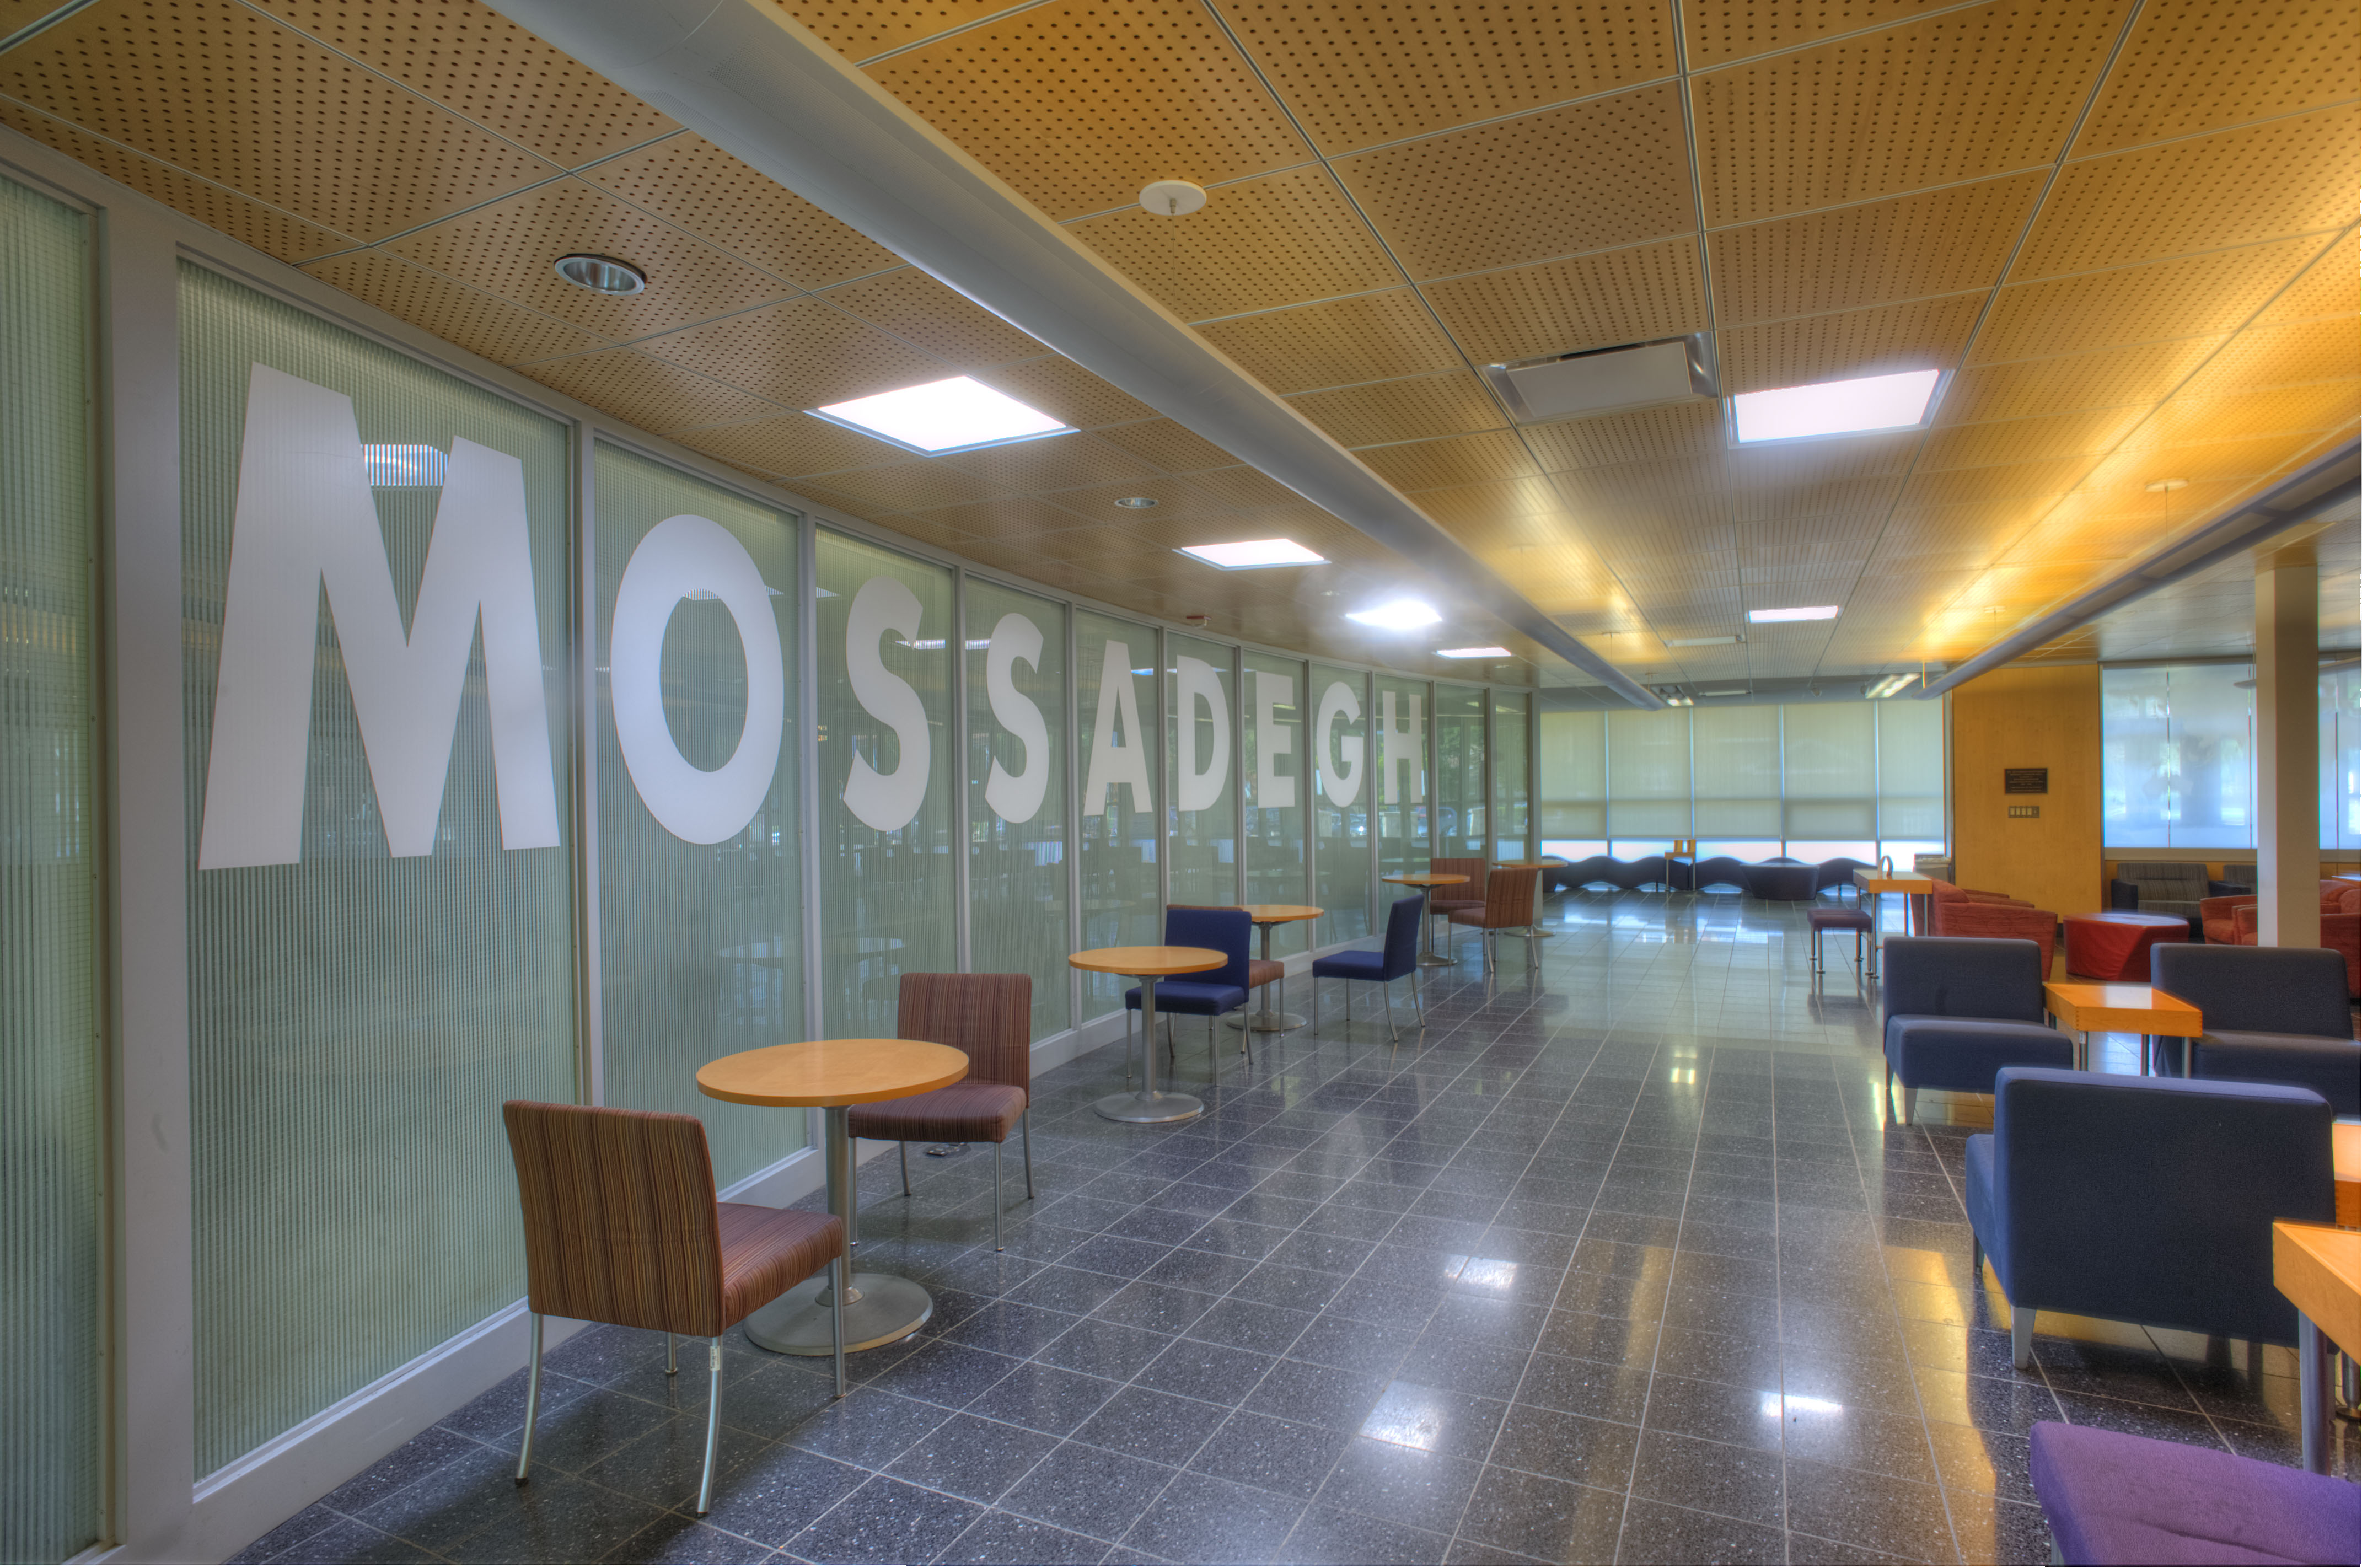 MOSSADEGH spelled out in large capital letters on the windows in Mossadegh Servant Leaders Hall in the College of Business and Management